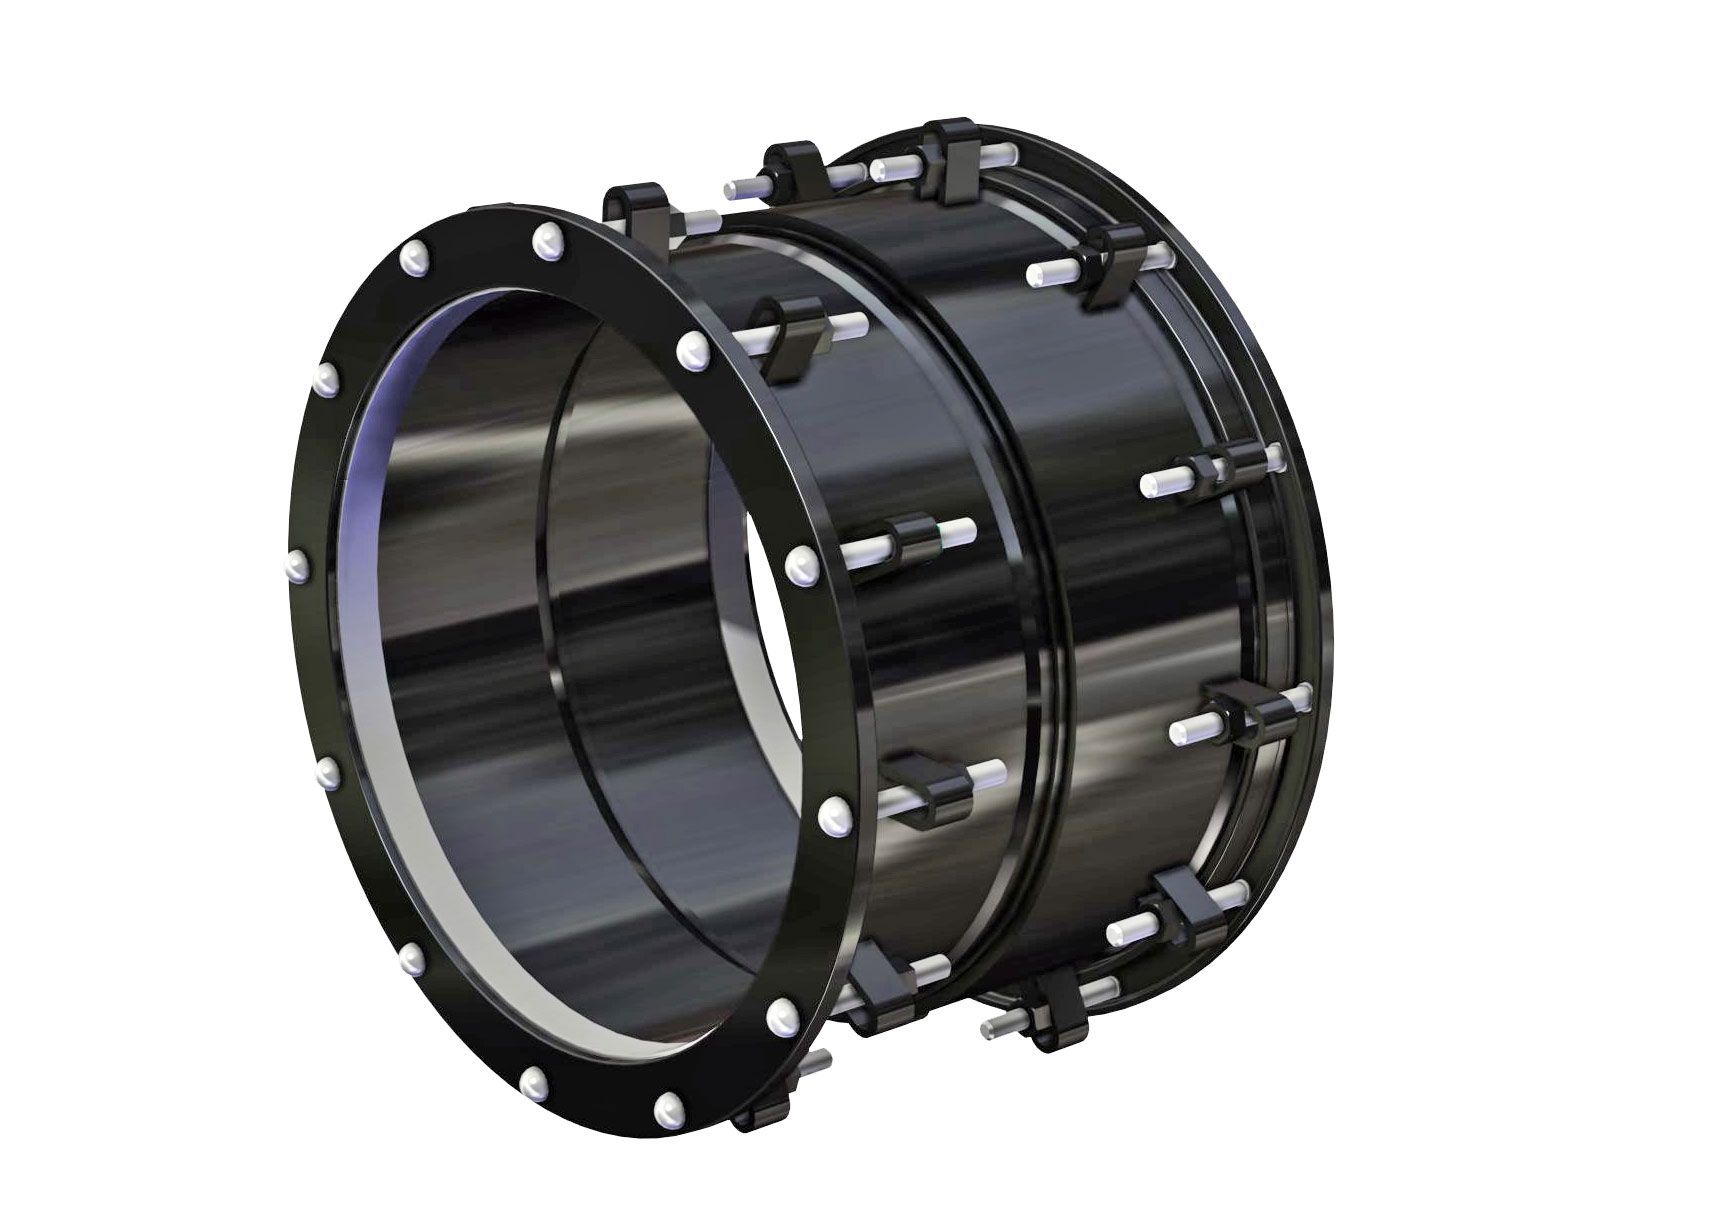 RC400 - Fabricated steel reducing pipe coupling for pipe sizes 12 inch and larger.Nominal Sizes12 - 96 inches,larger sizes available upon request'Working PressureSee product submittalPipe CompatibilitySteel, cast iron, asbestos cement, plastic and other types of pipe